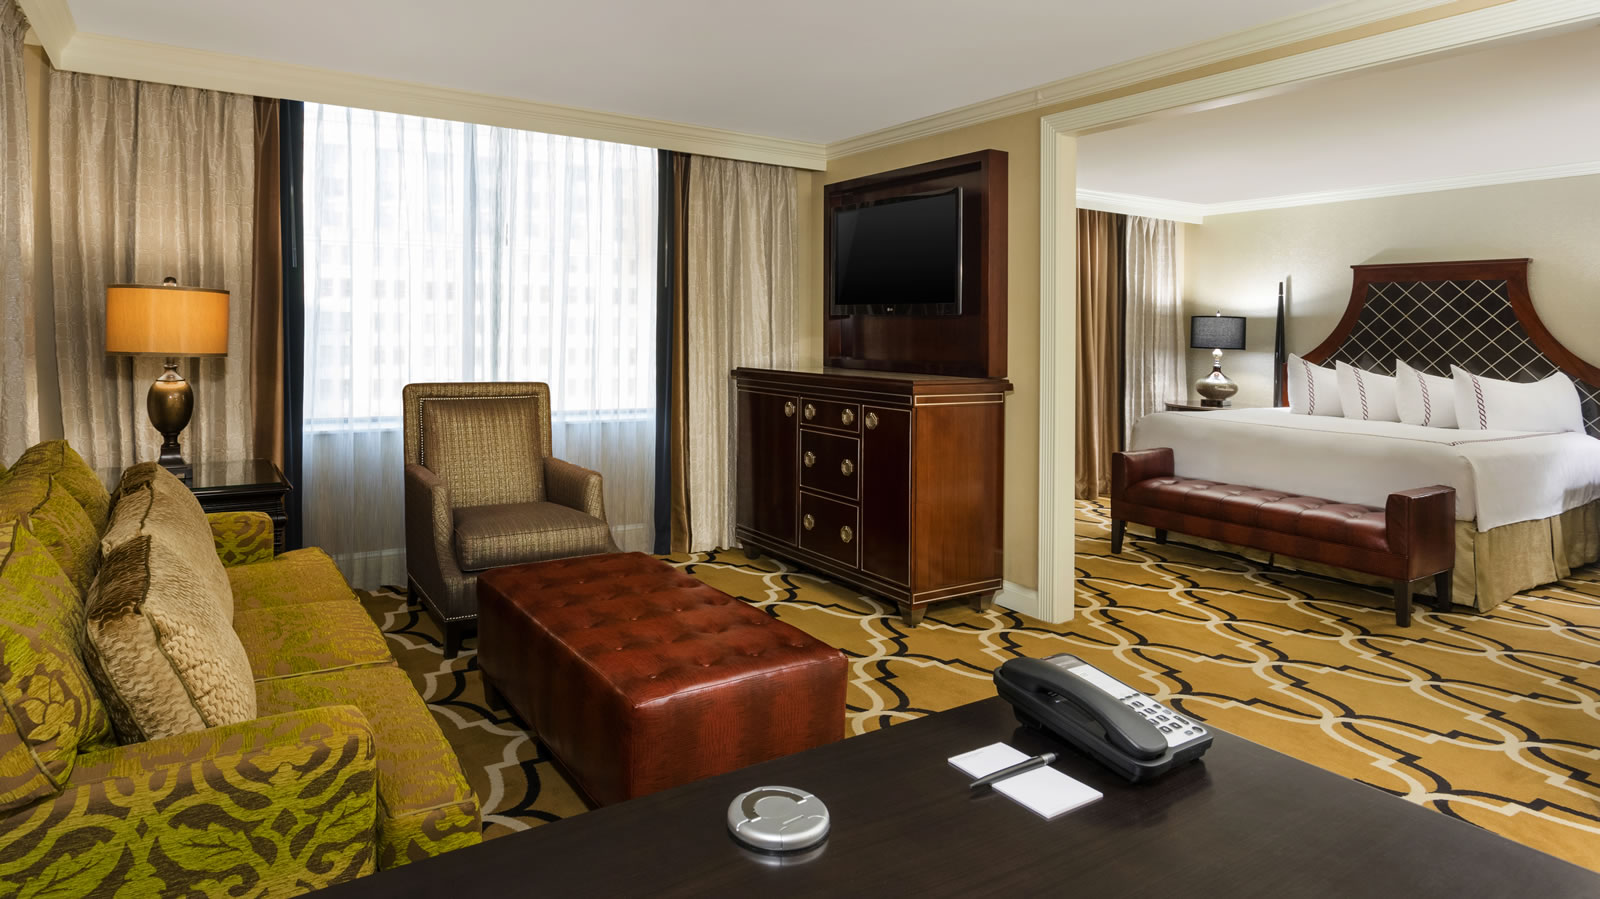 Howling Intercontinental New Orleans Intercontinental New Orleans Hotels New Orleans Hyatt House New Orleans To Bourbon Street Hyatt House New Orleans Suite Suites curbed Hyatt House New Orleans